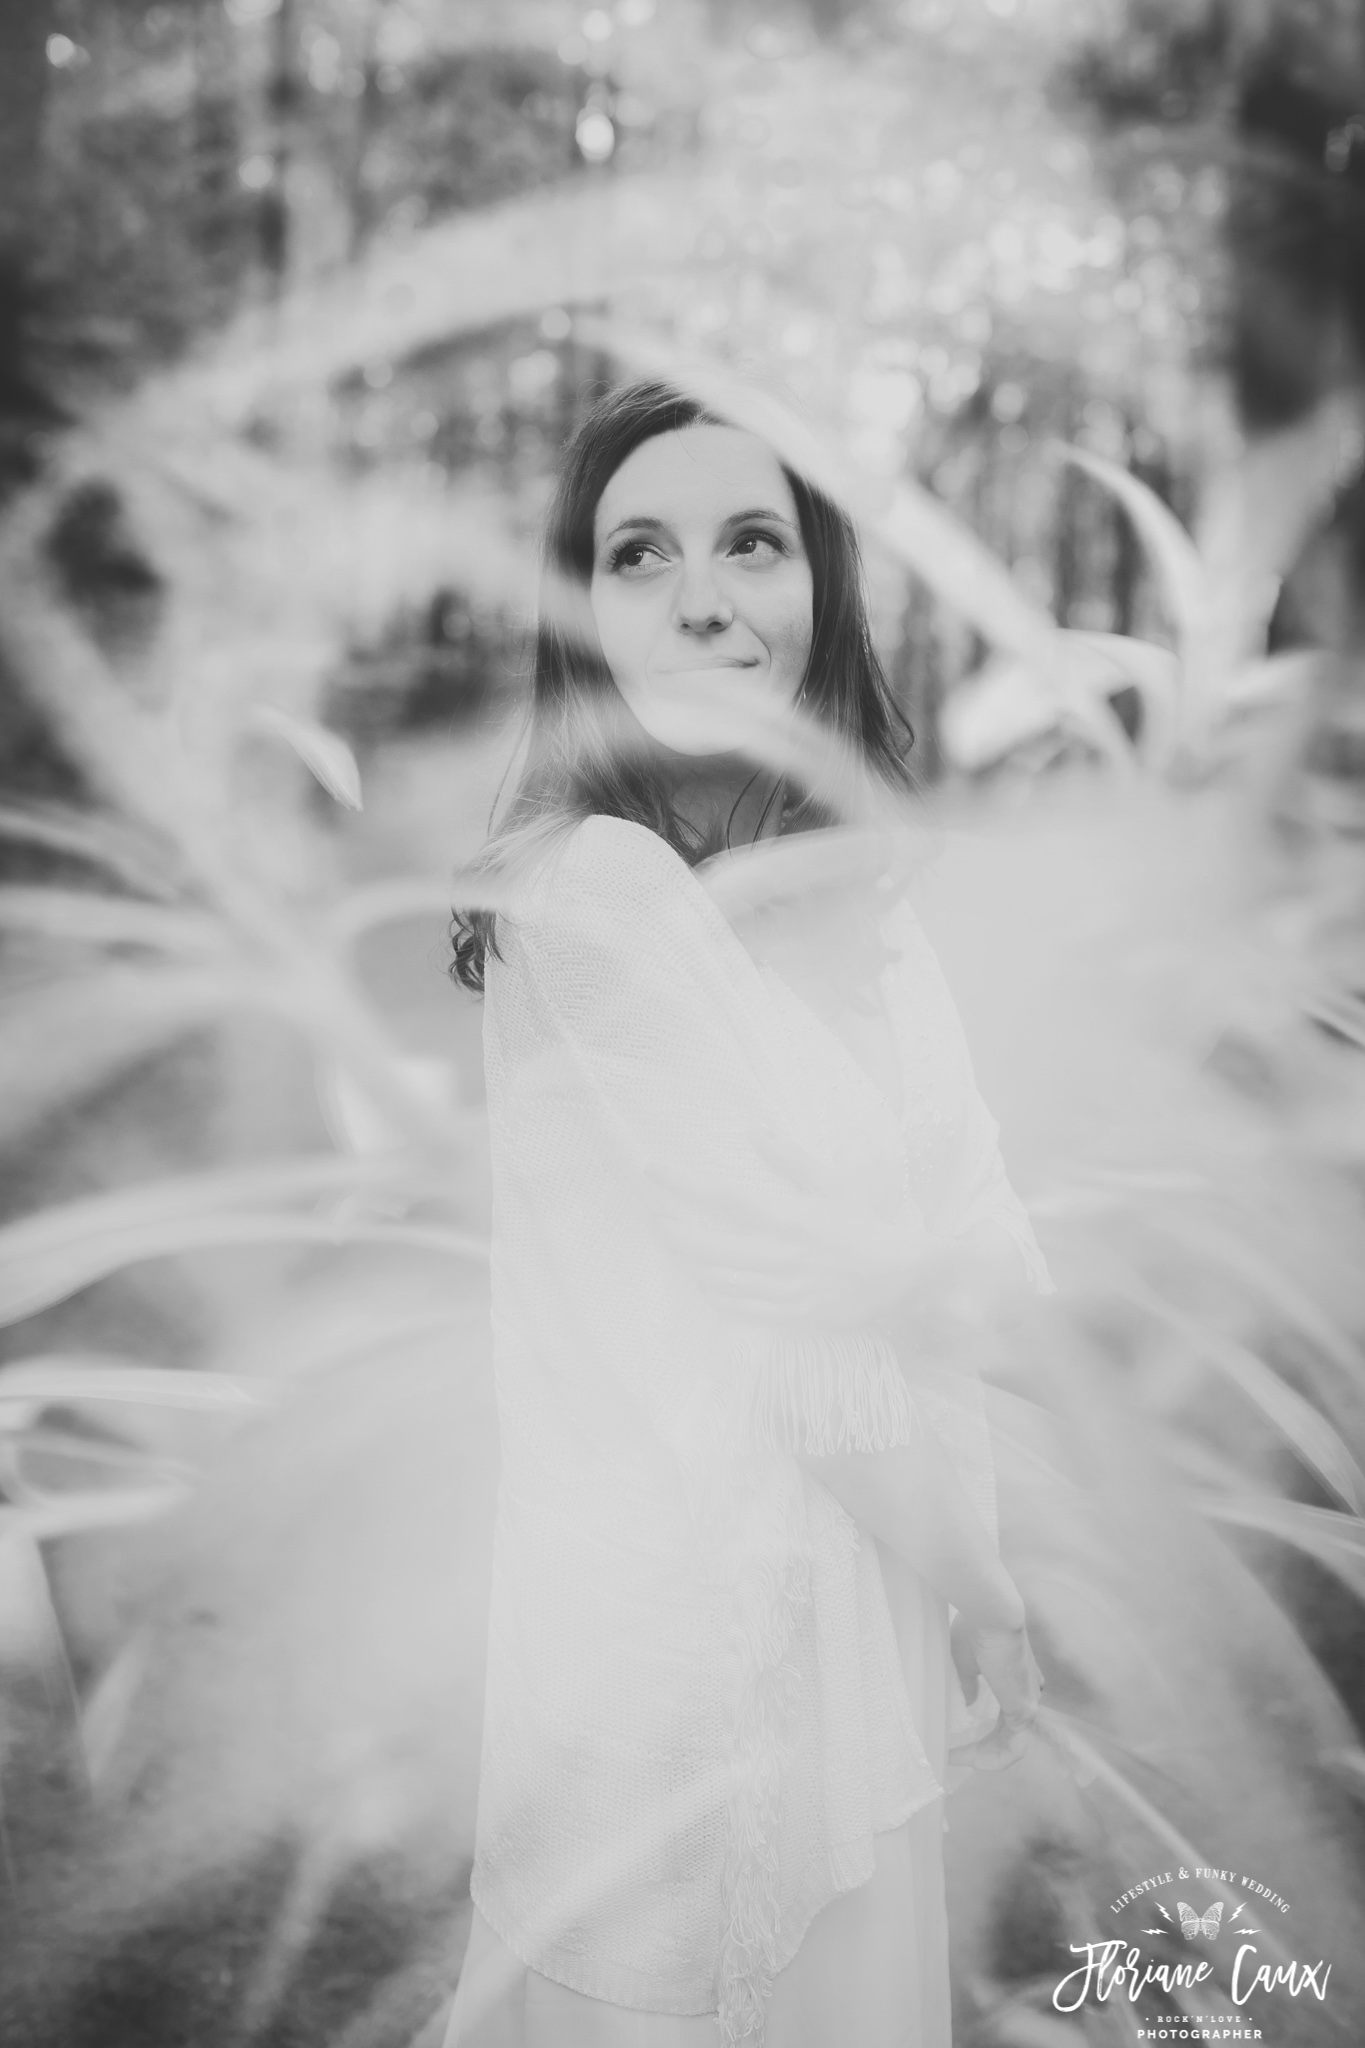 destination-wedding-photographer-oslo-norway-floriane-caux-81